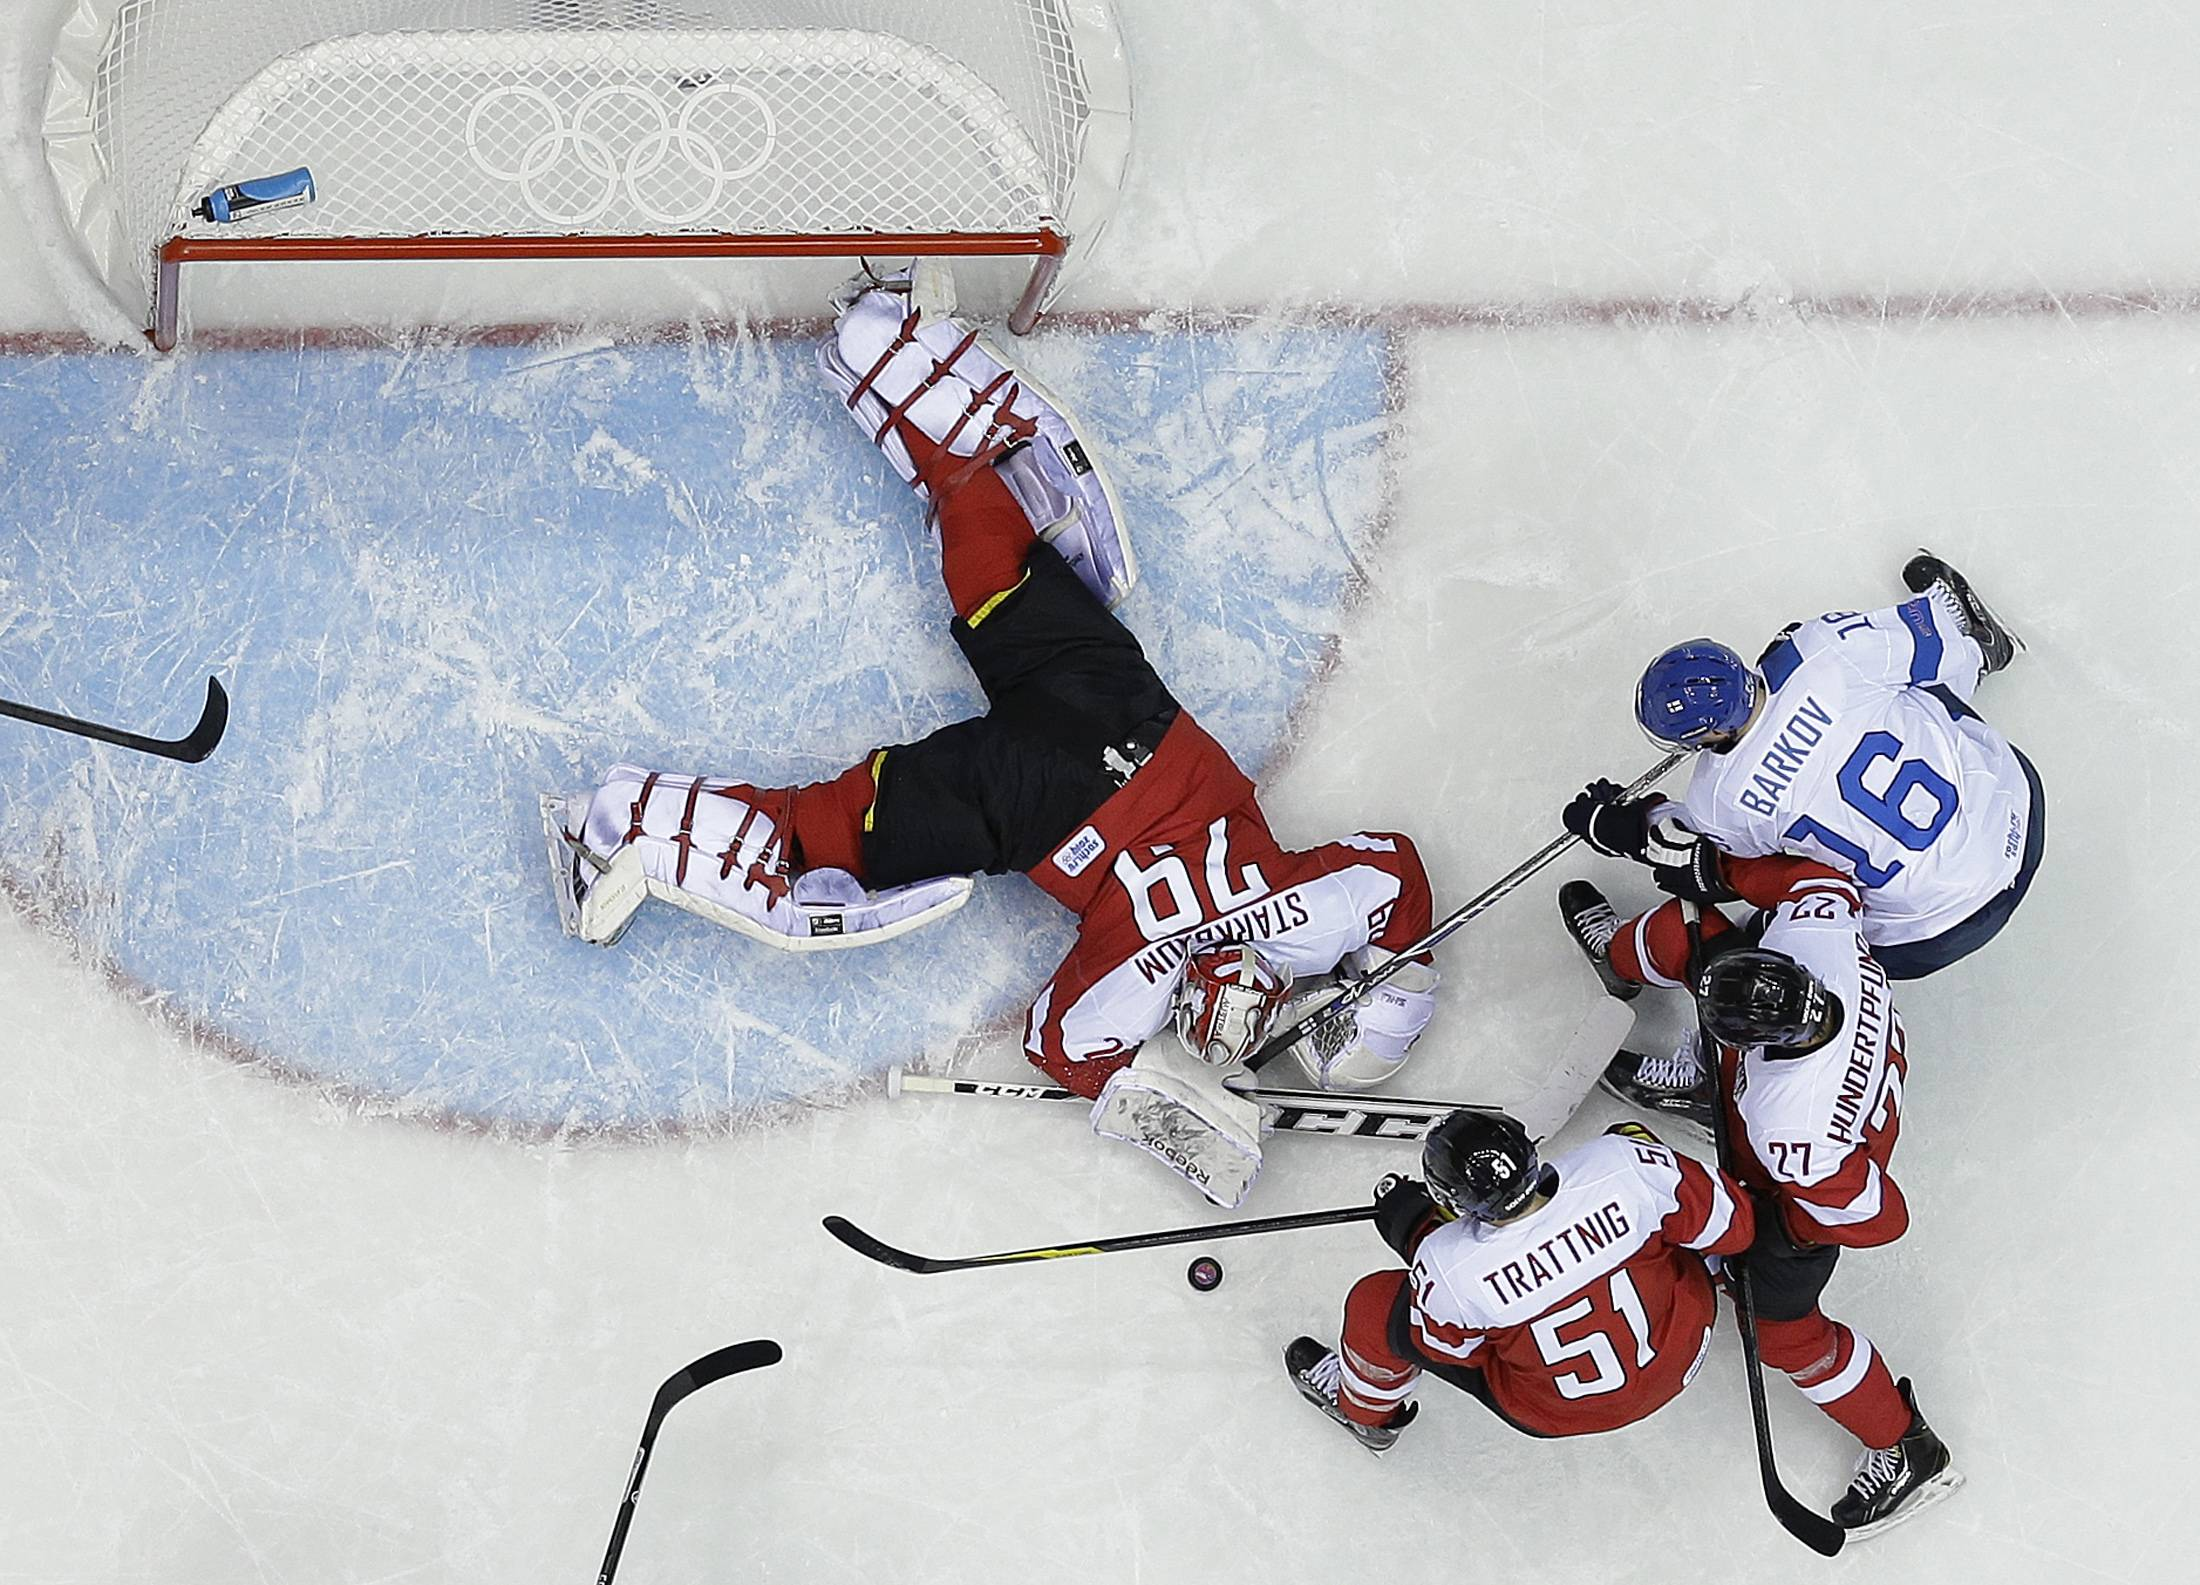 Austria goaltender Bernhard Starkbaum reaches for the rebound as Finland forward Aleksander Barkov looks to score Thursday in the third period at the 2014 Winter Olympics in Sochi, Russia.